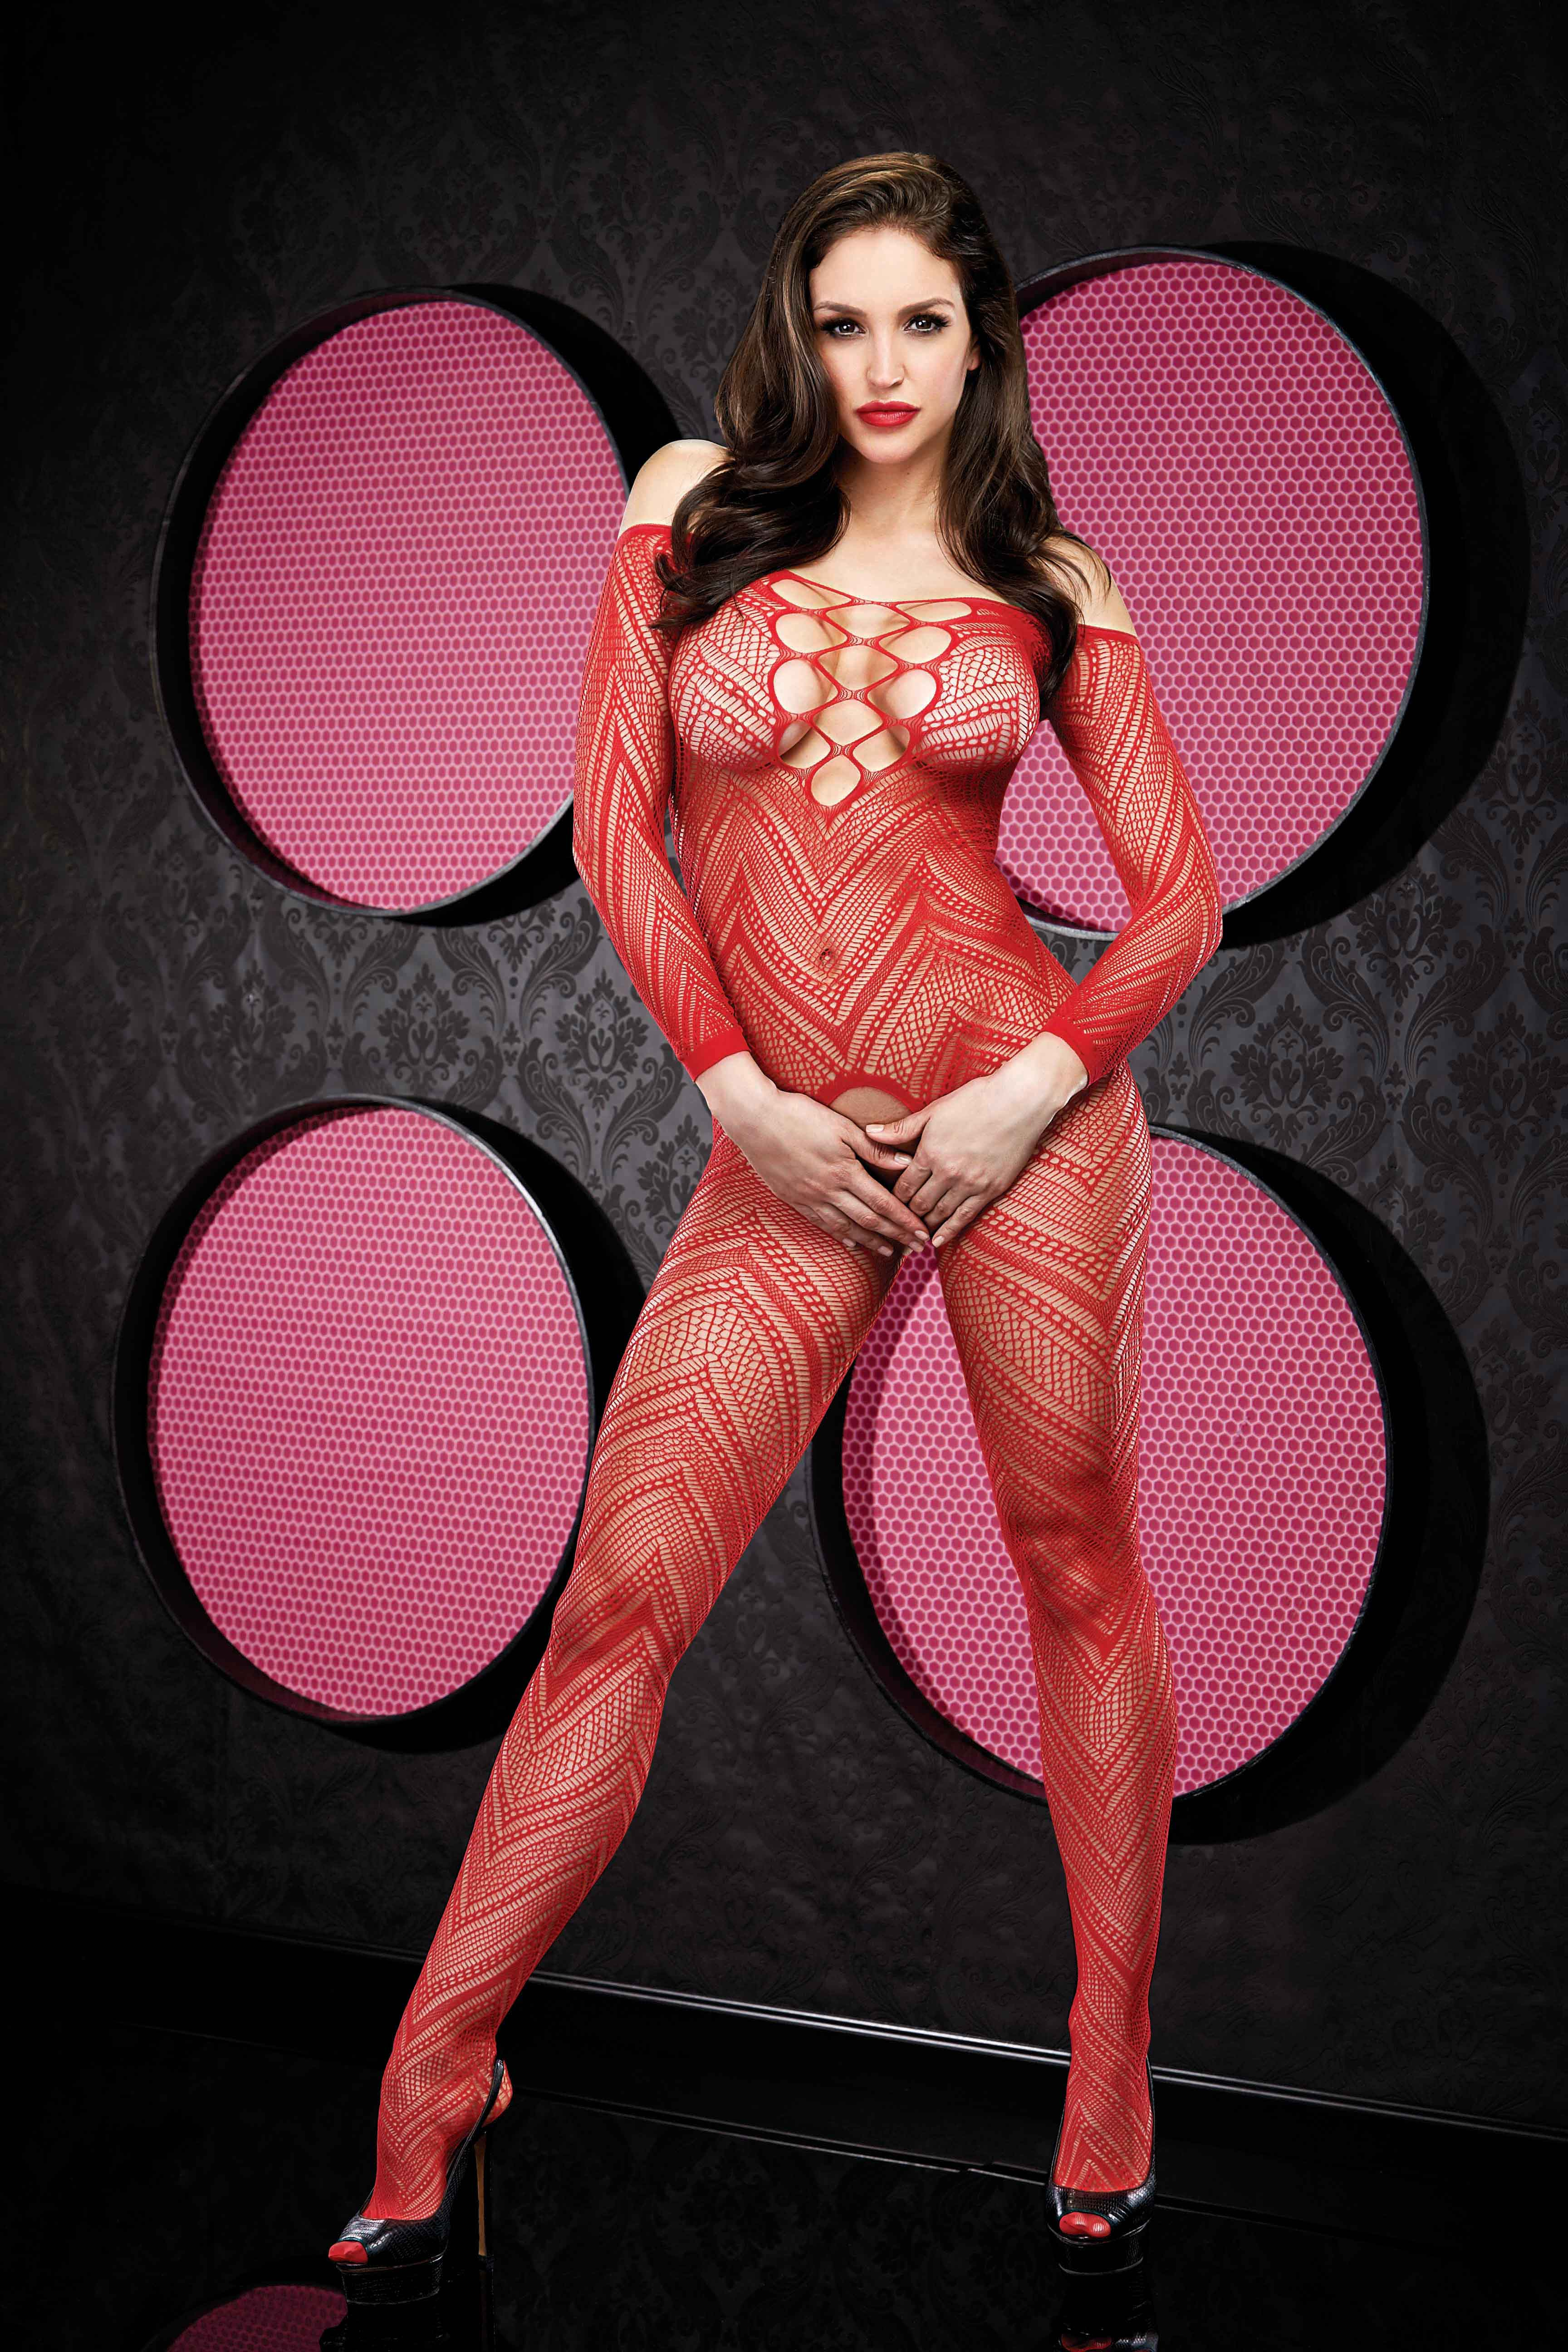 VIP L/S Crotchless Bodystocking Red - Lapdance Lingerie - LH-2008-R - 848416002030